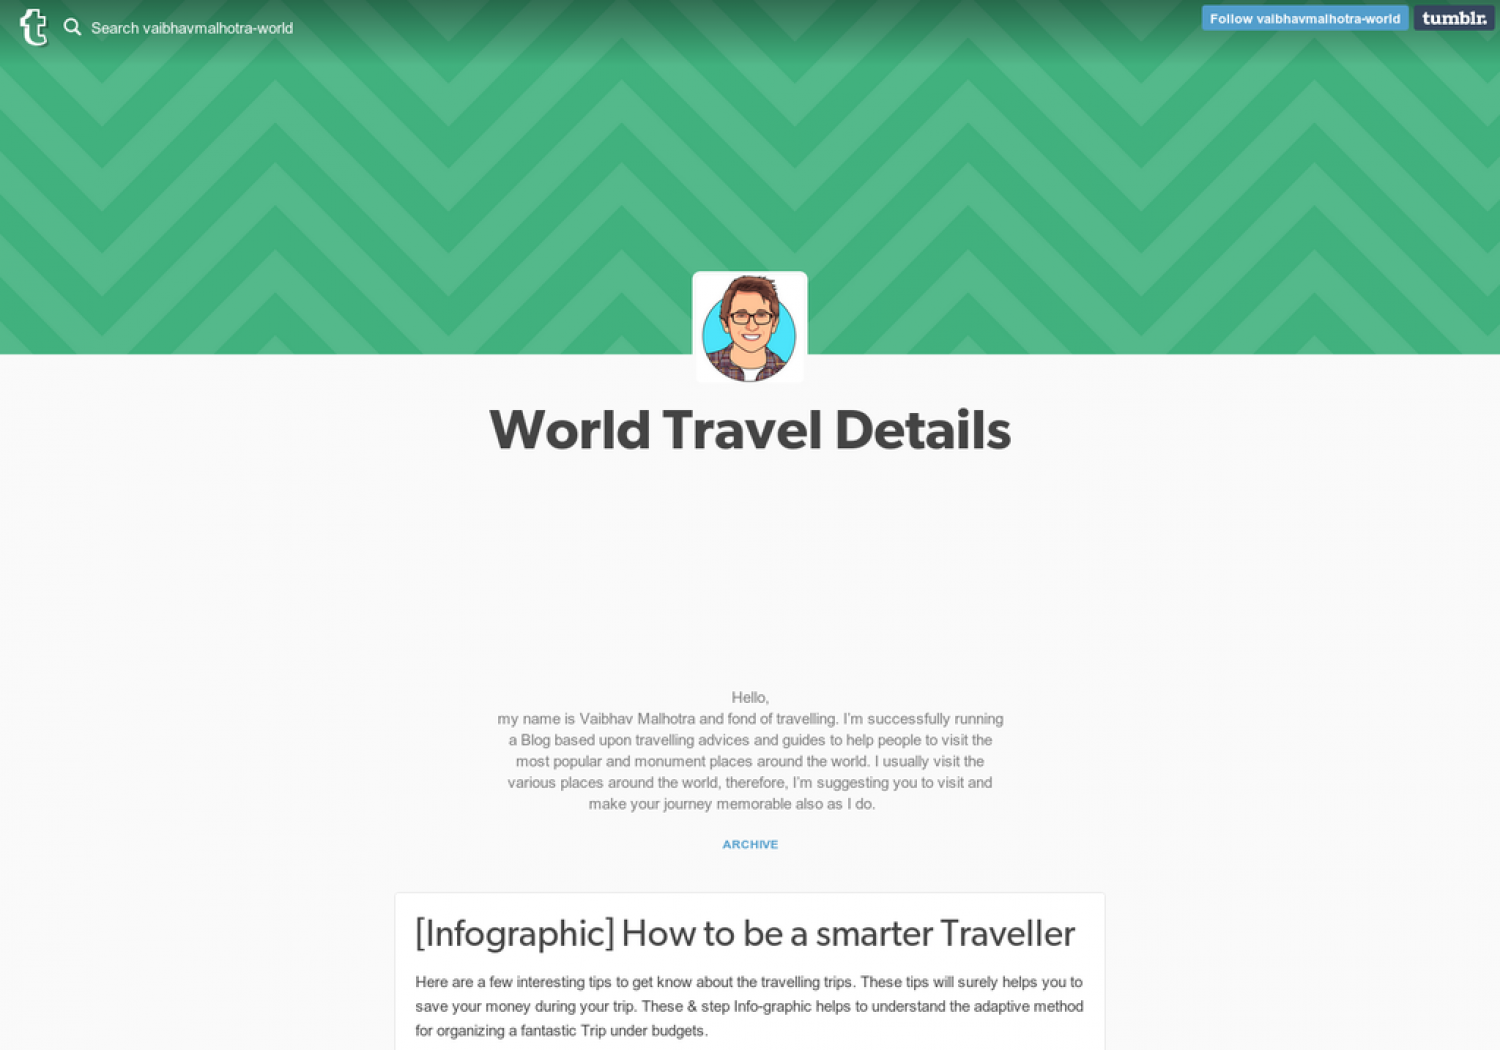 [Infographic] How to be a smarter Traveller Infographic